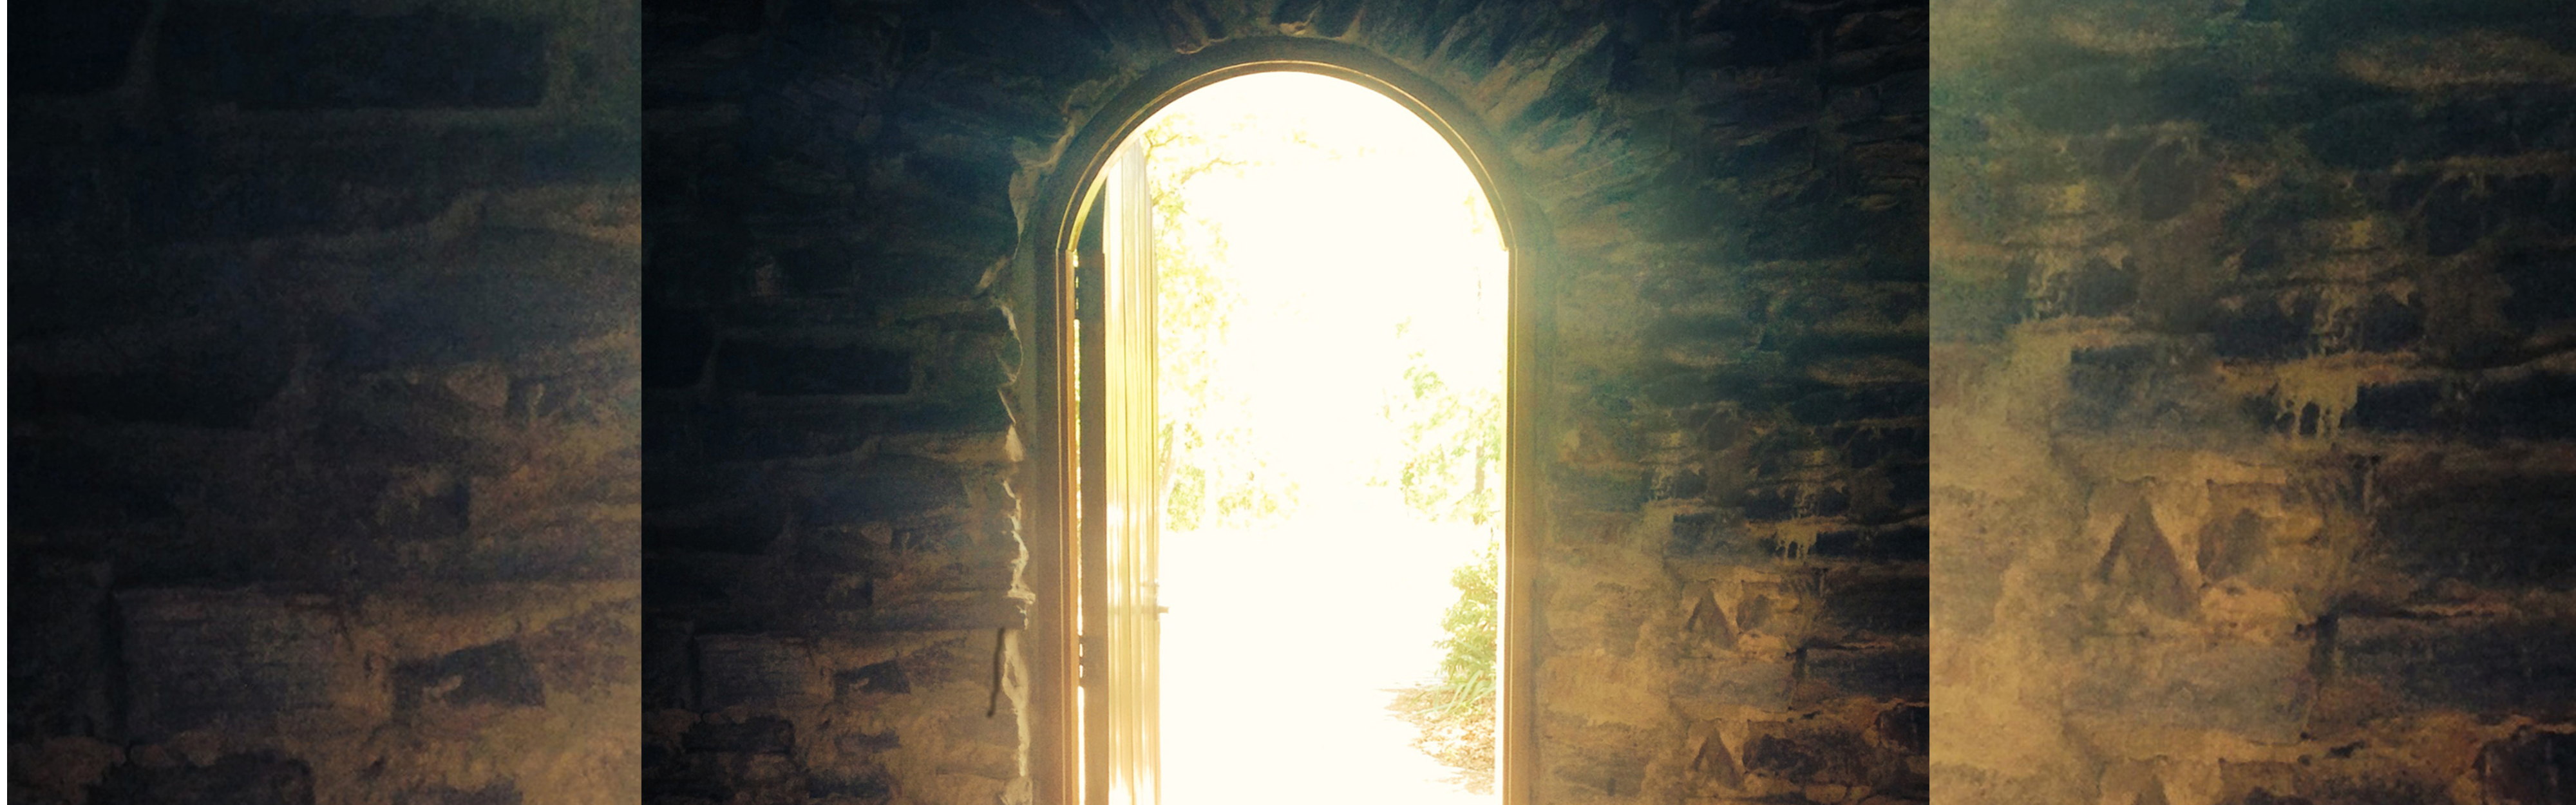 open door to the outside with a glow from the sun